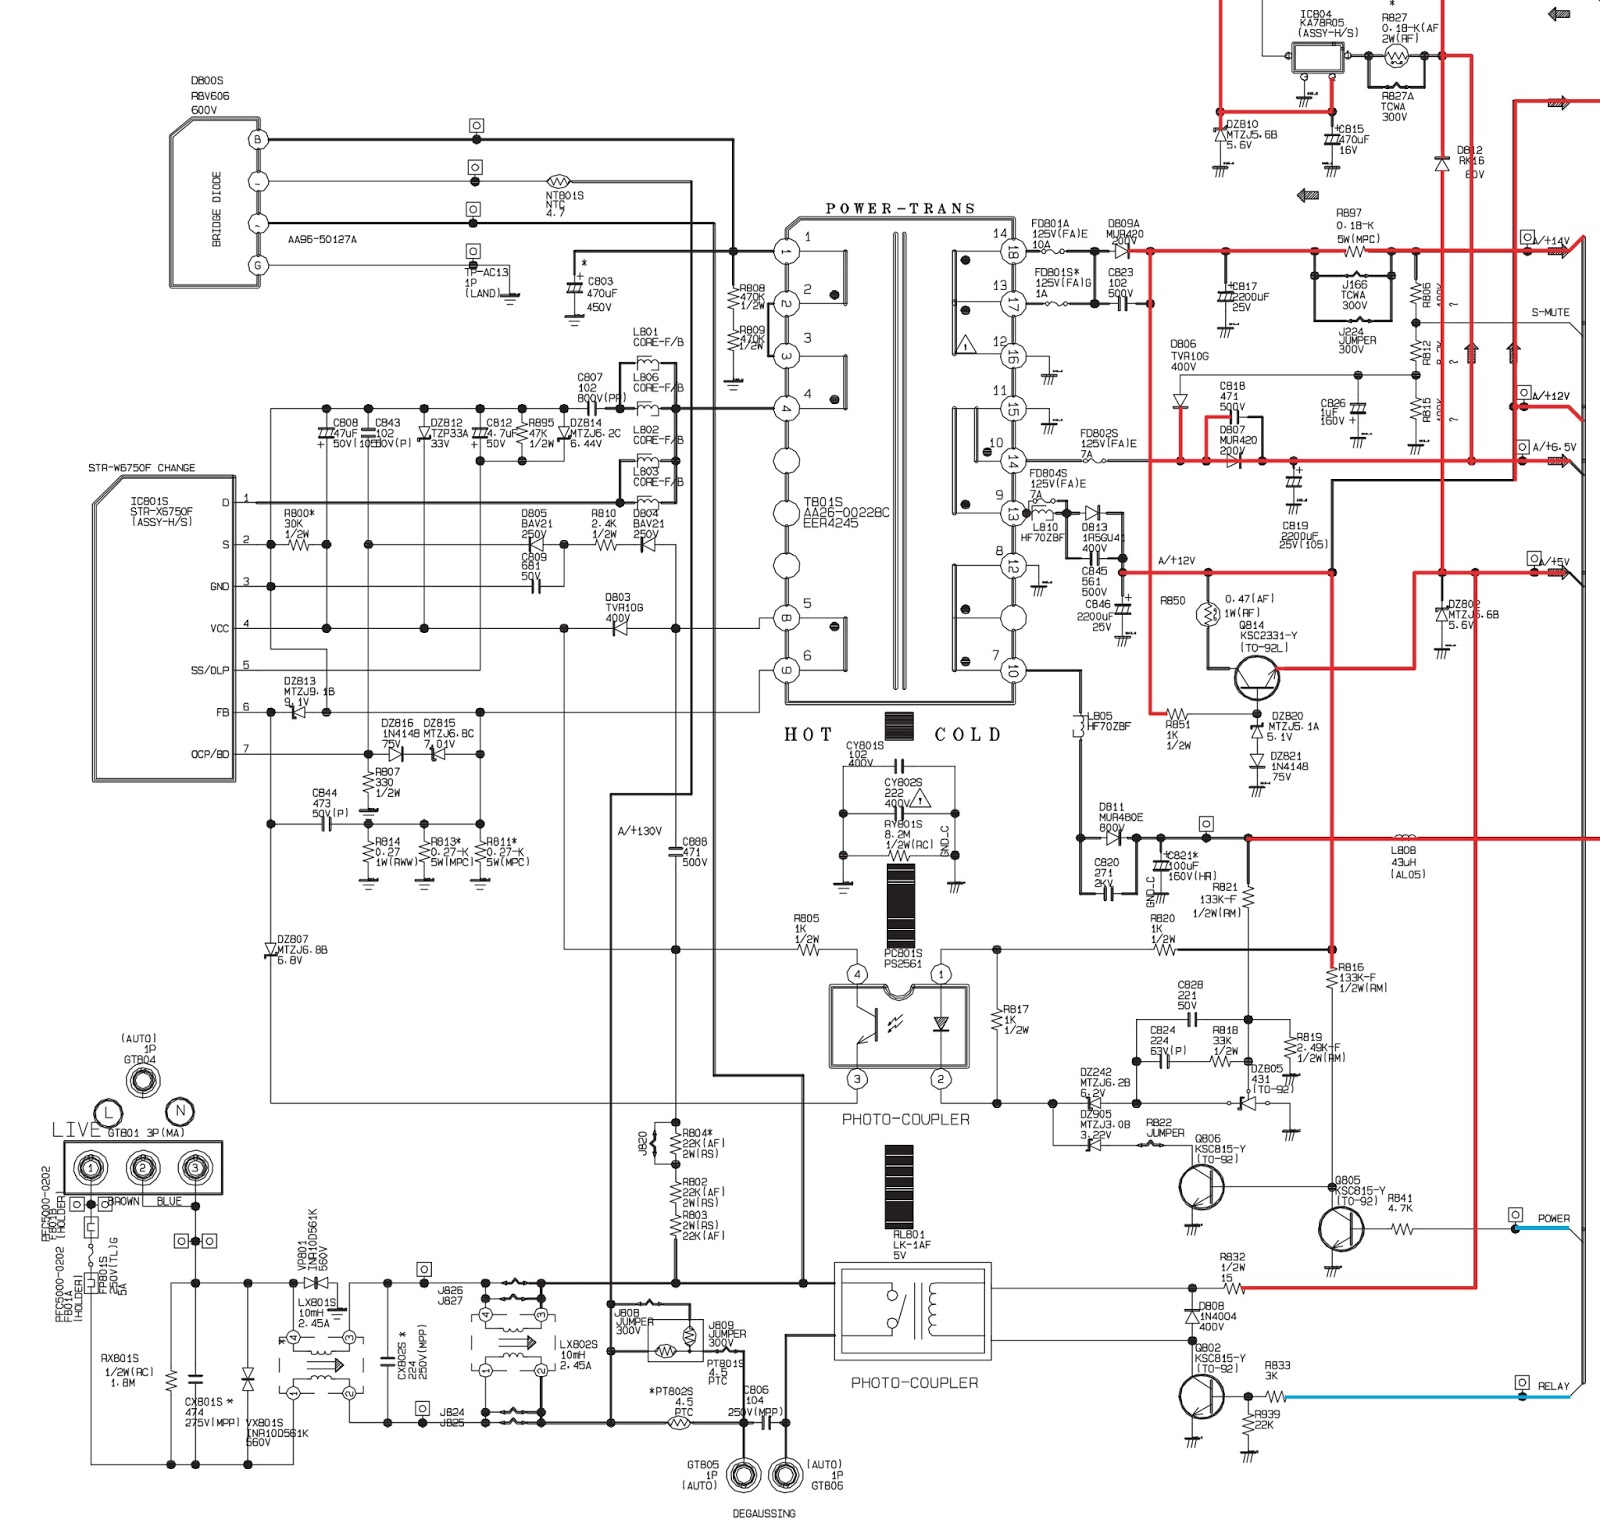 medium resolution of samsung cl29x50 power supply smps schematic circuit diagram str x6750f